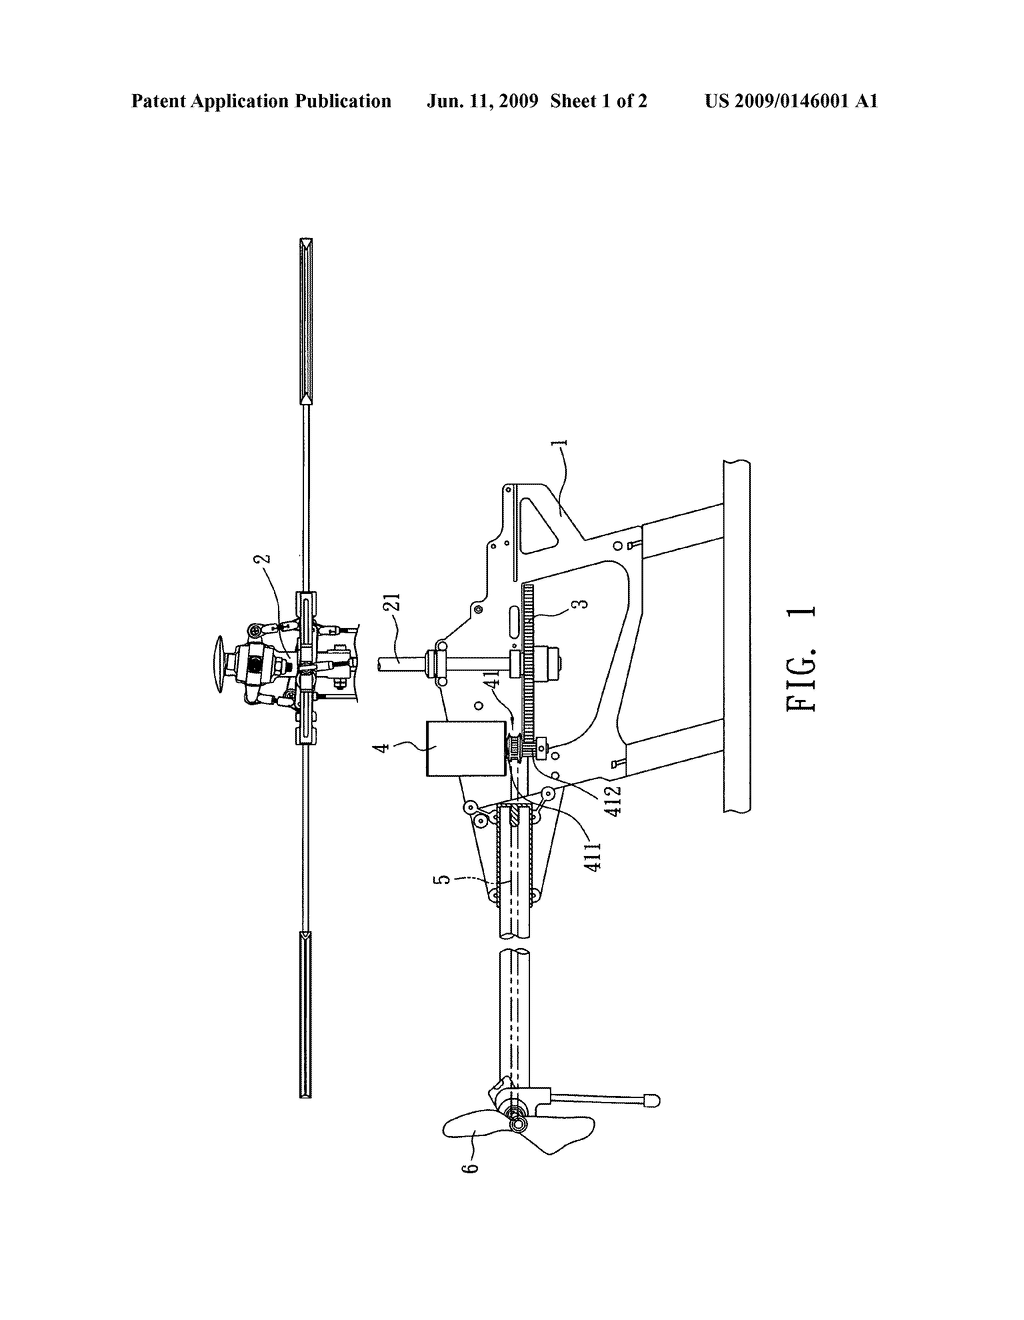 Power Transmission System For An Aircraft Diagram Schematic And 2002 Saturn L200 Stereo Wiring Image 02